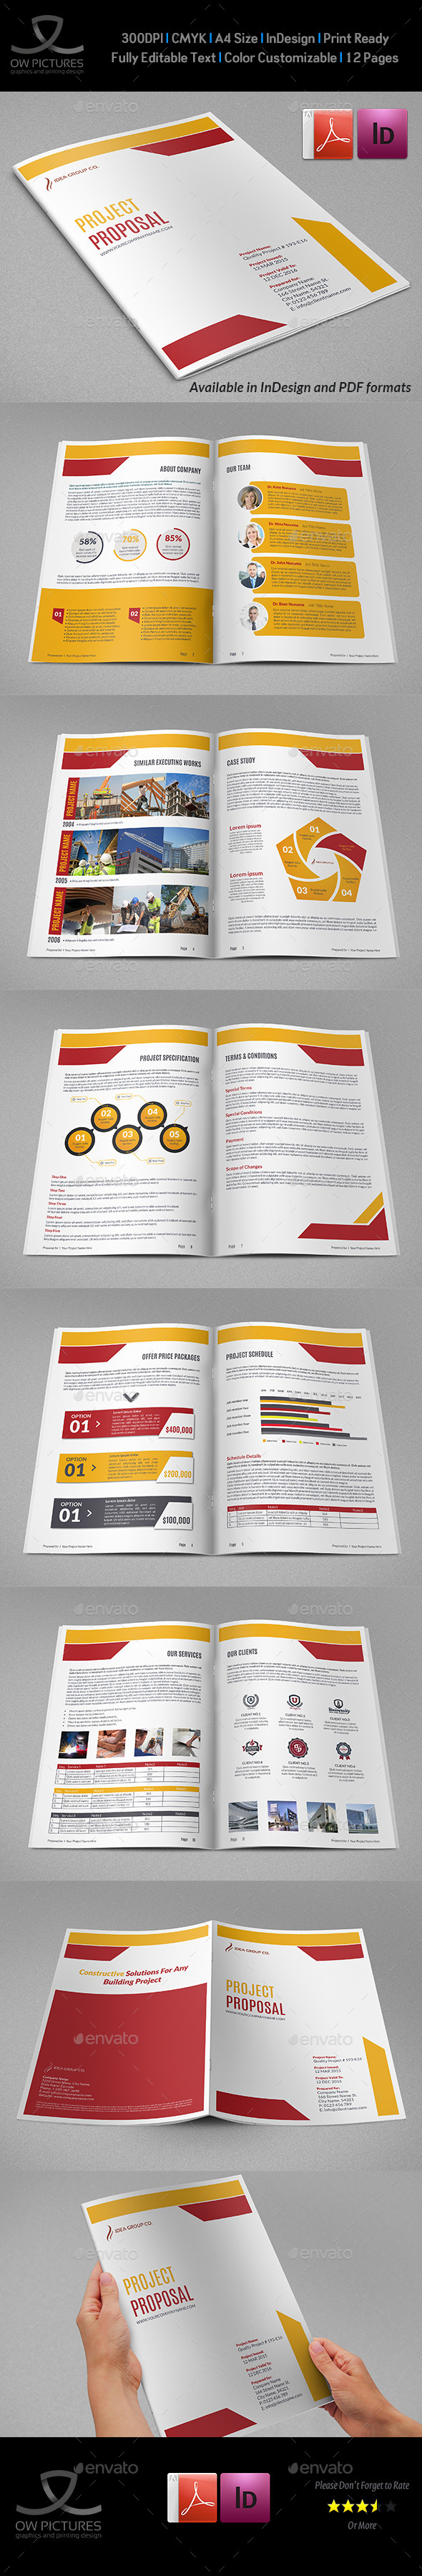 GraphicRiver Construction Company Proposal Template Vol.4 10025127